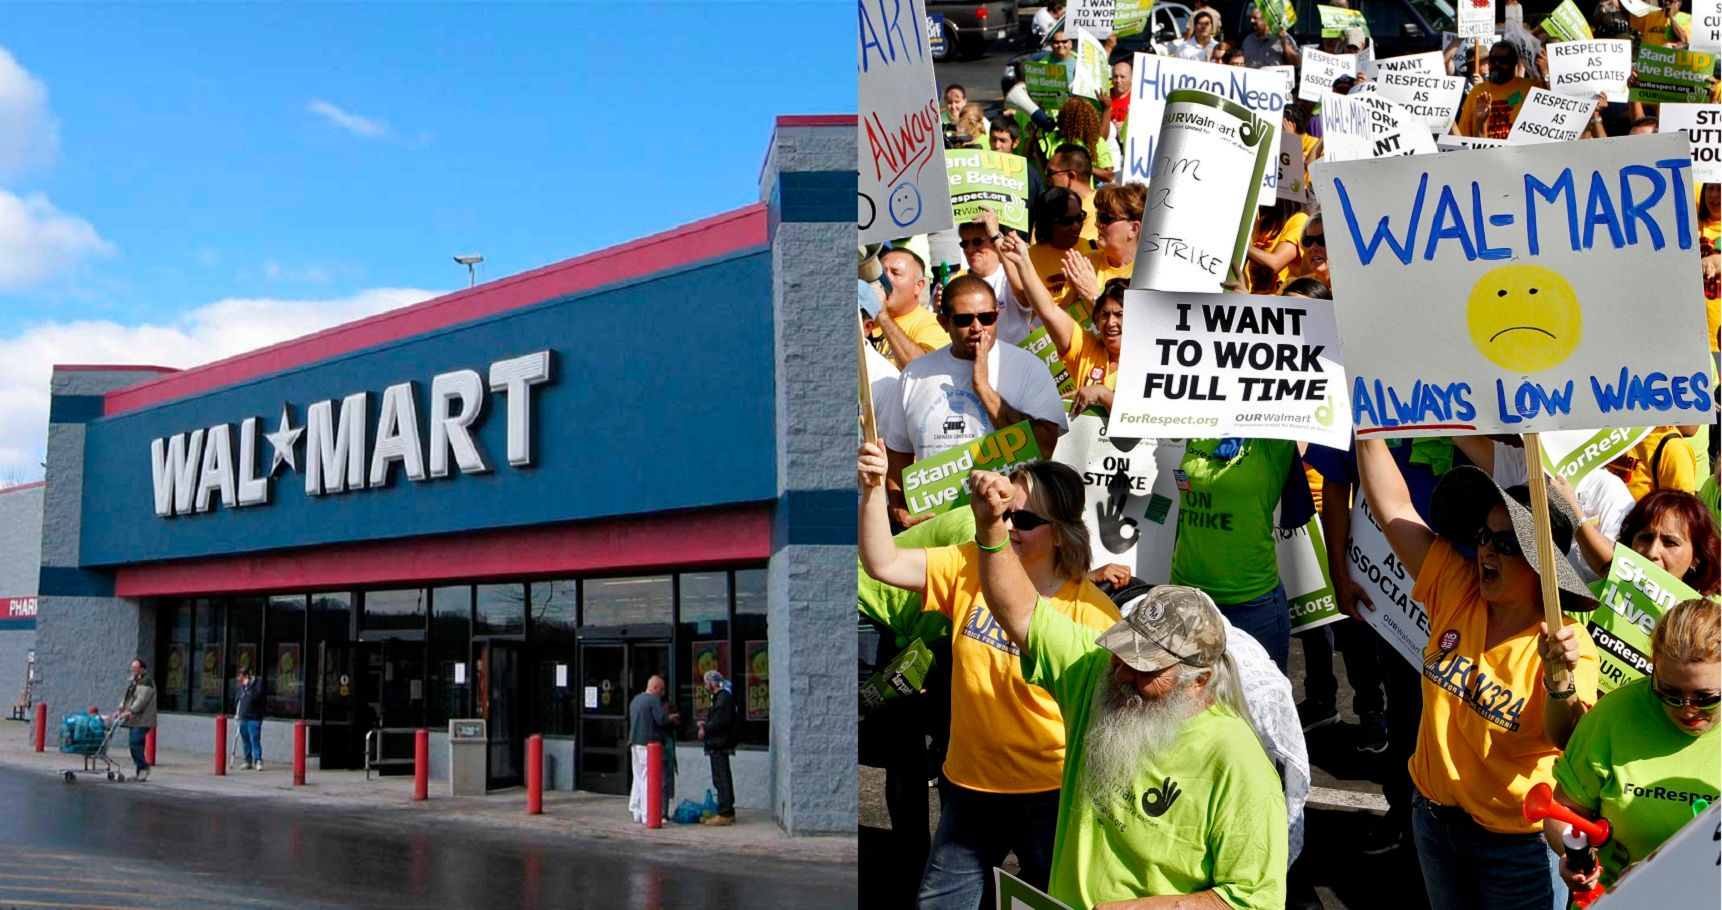 10 Things Walmart Doesn't Want You To Know